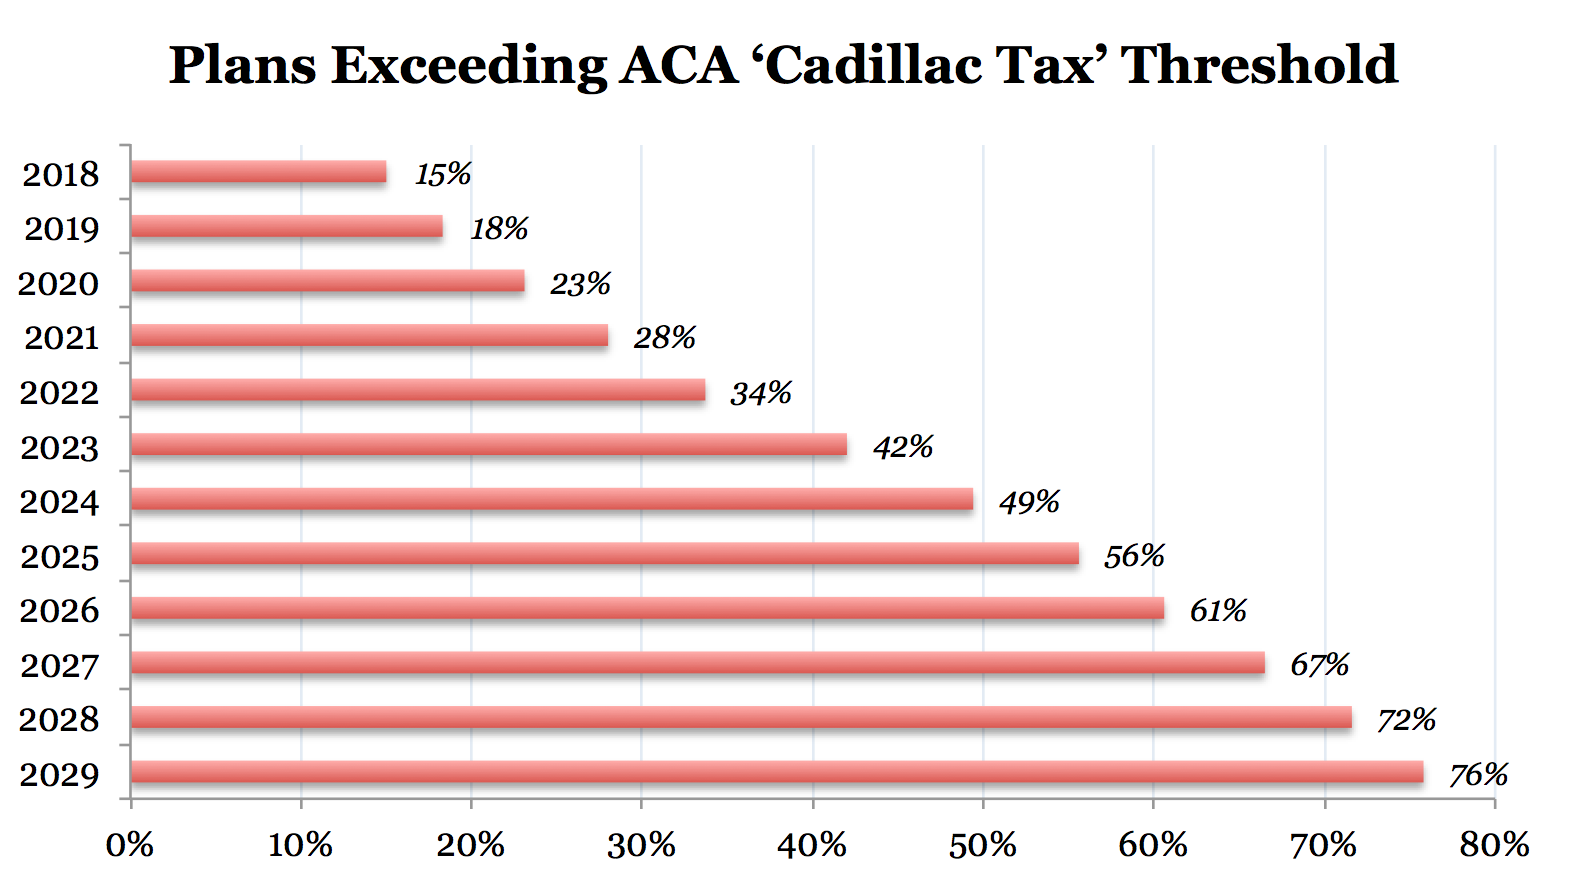 Benefit Revolution: Catch 22: To Make PPACA Fiscally Sustainable, the Cadillac Tax Must Become ...